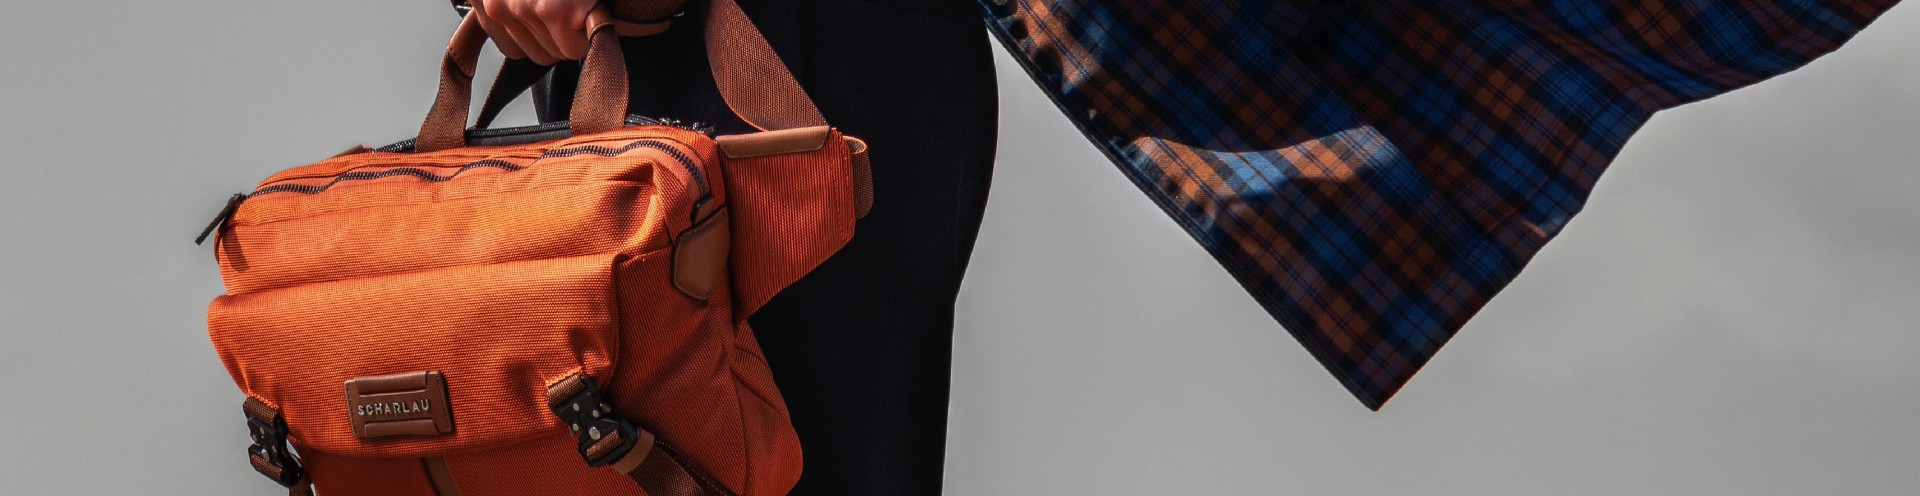 Customizable Leather Bags for Men